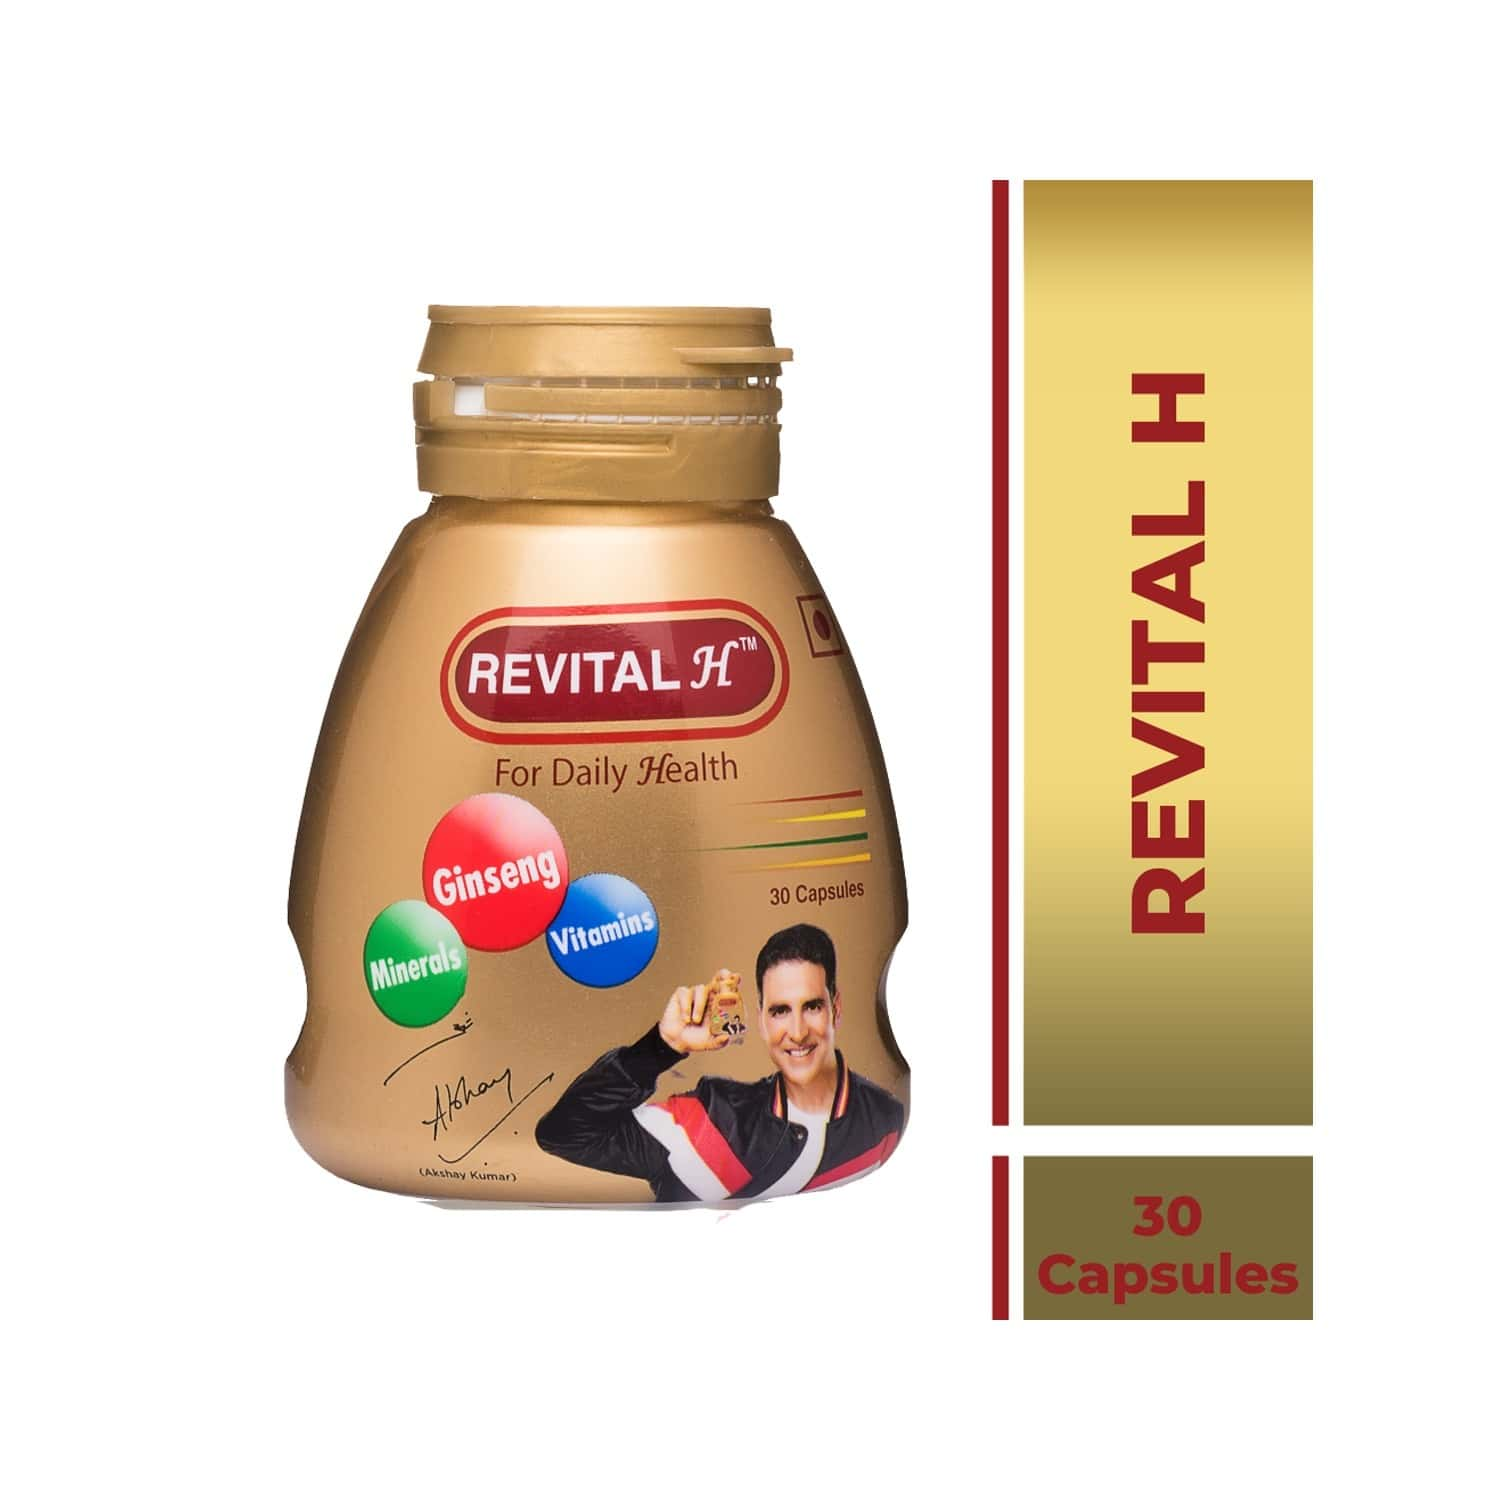 Revital H Health Supplement Capsules Bottle Of 30